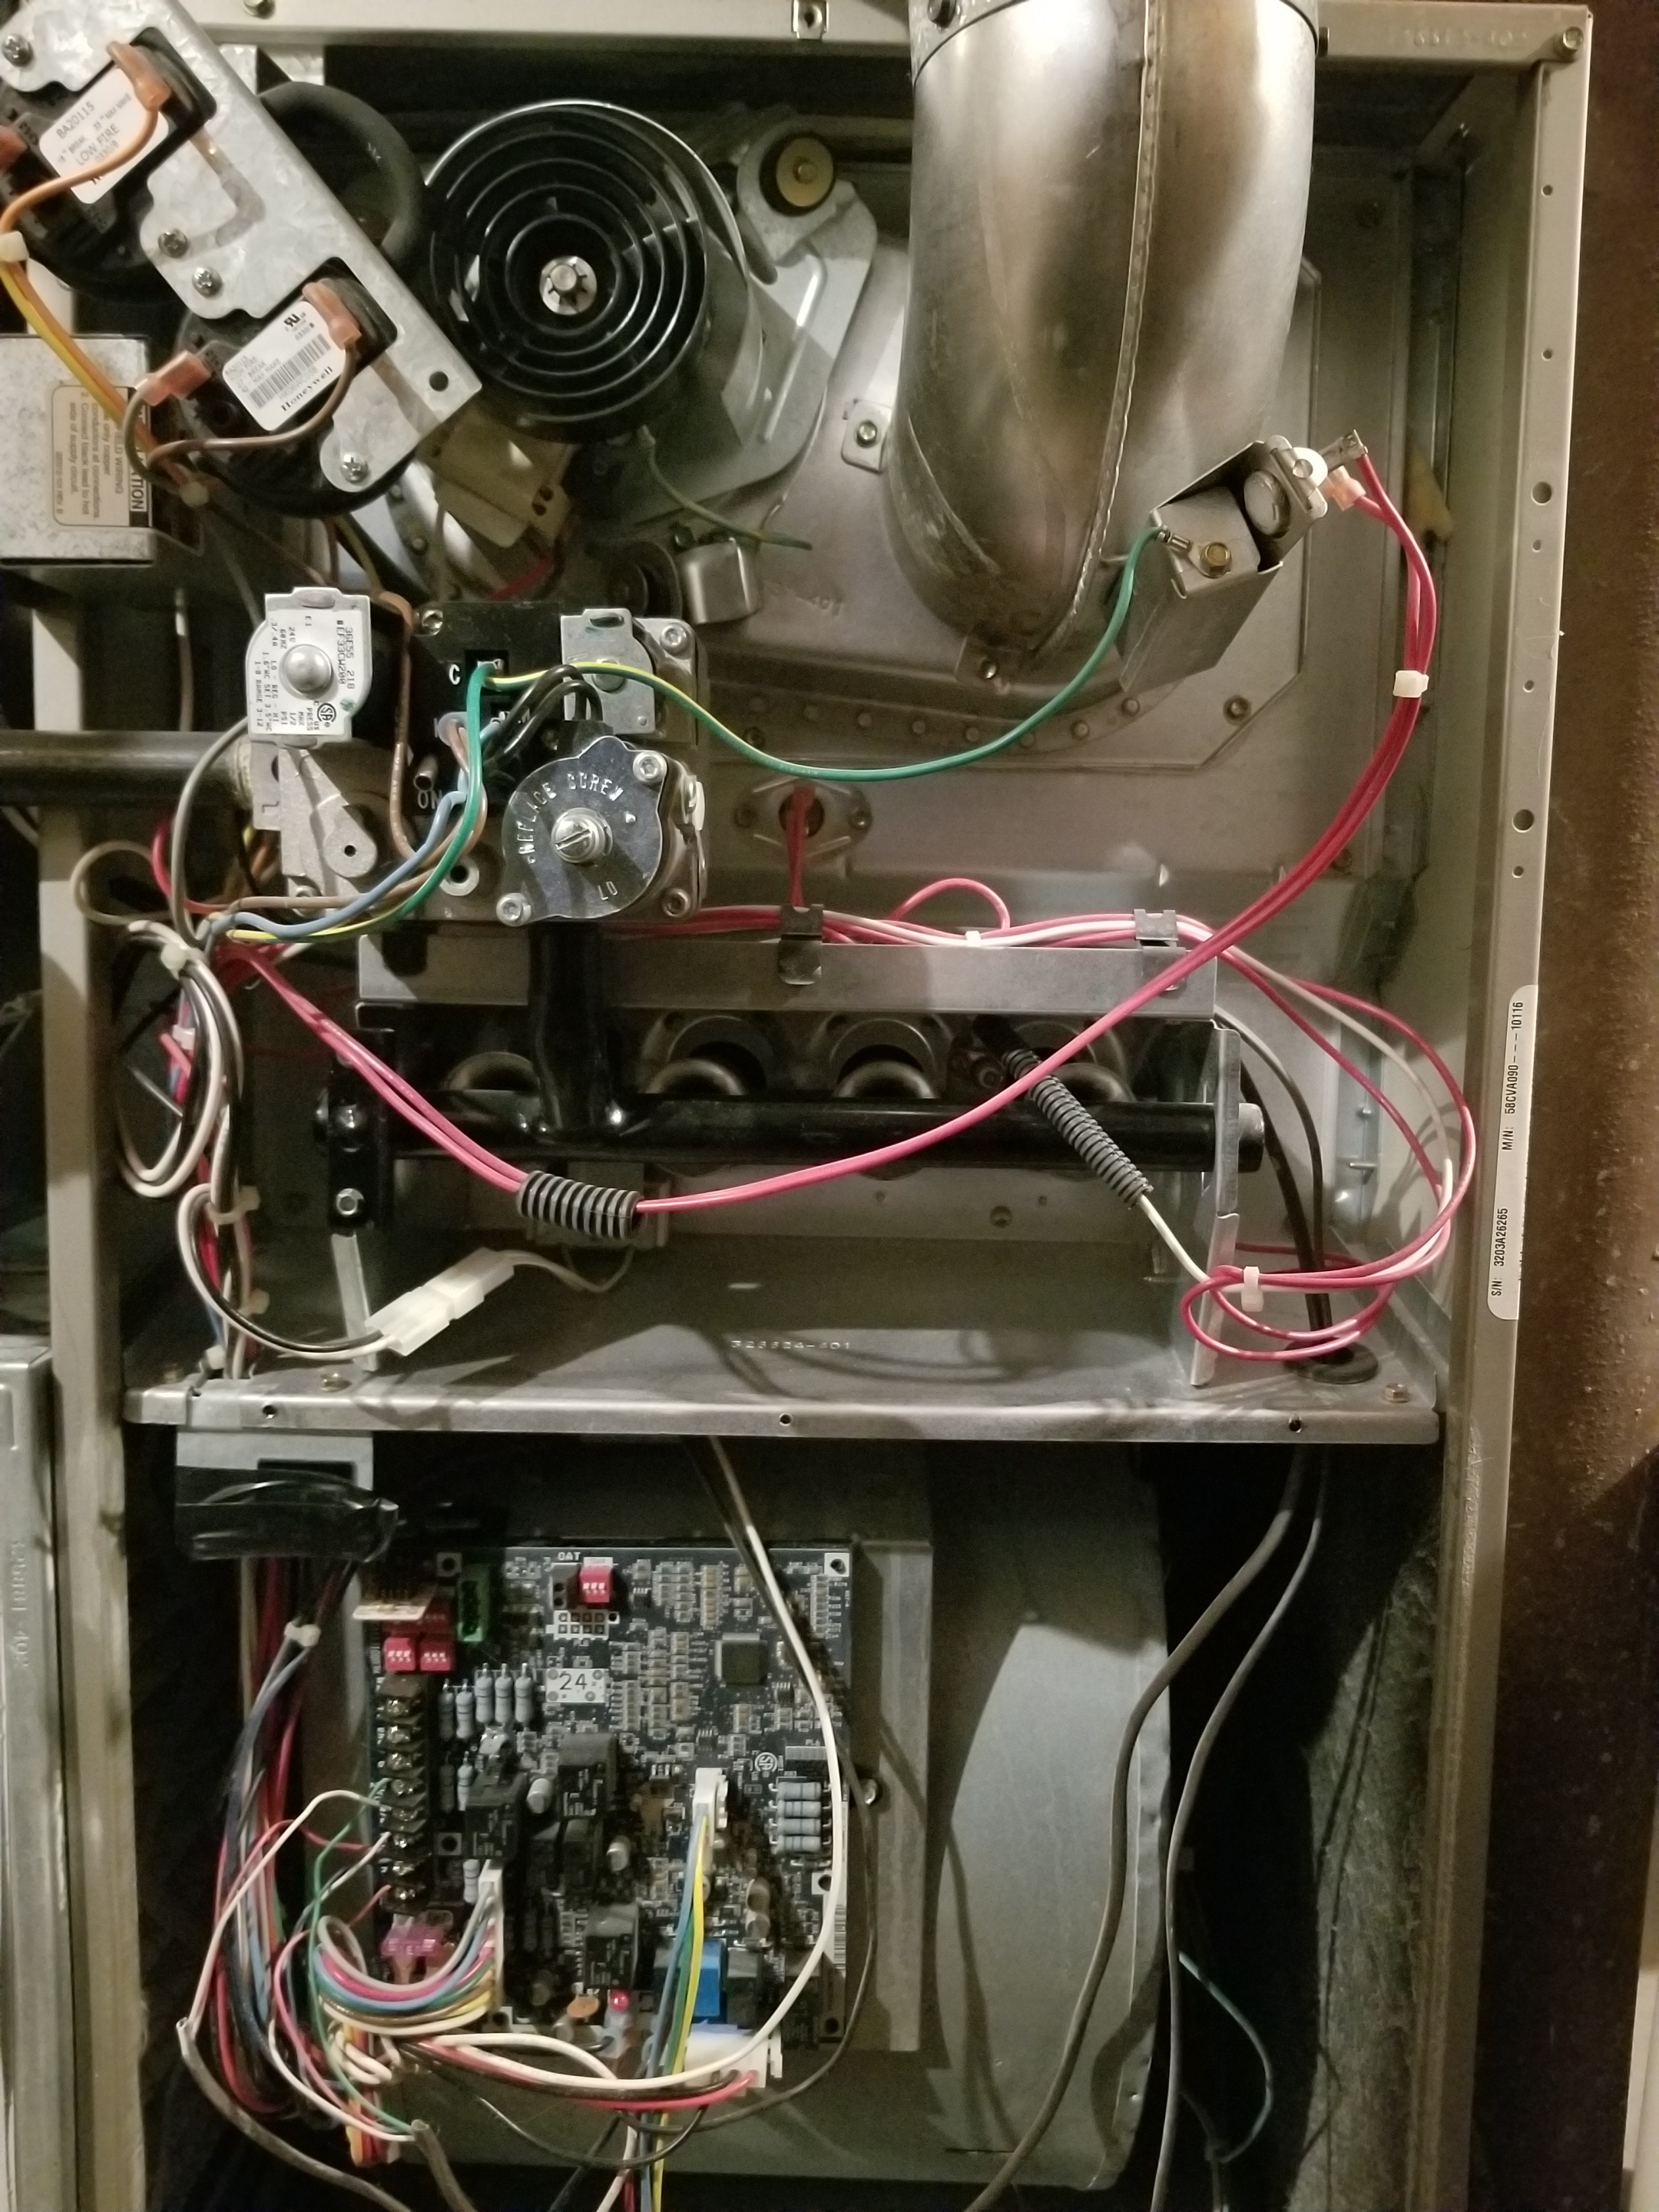 Performed annual maintenance on the Carrier furnace and made adjustments to improve the overall efficiency and life expectancy of the equipment